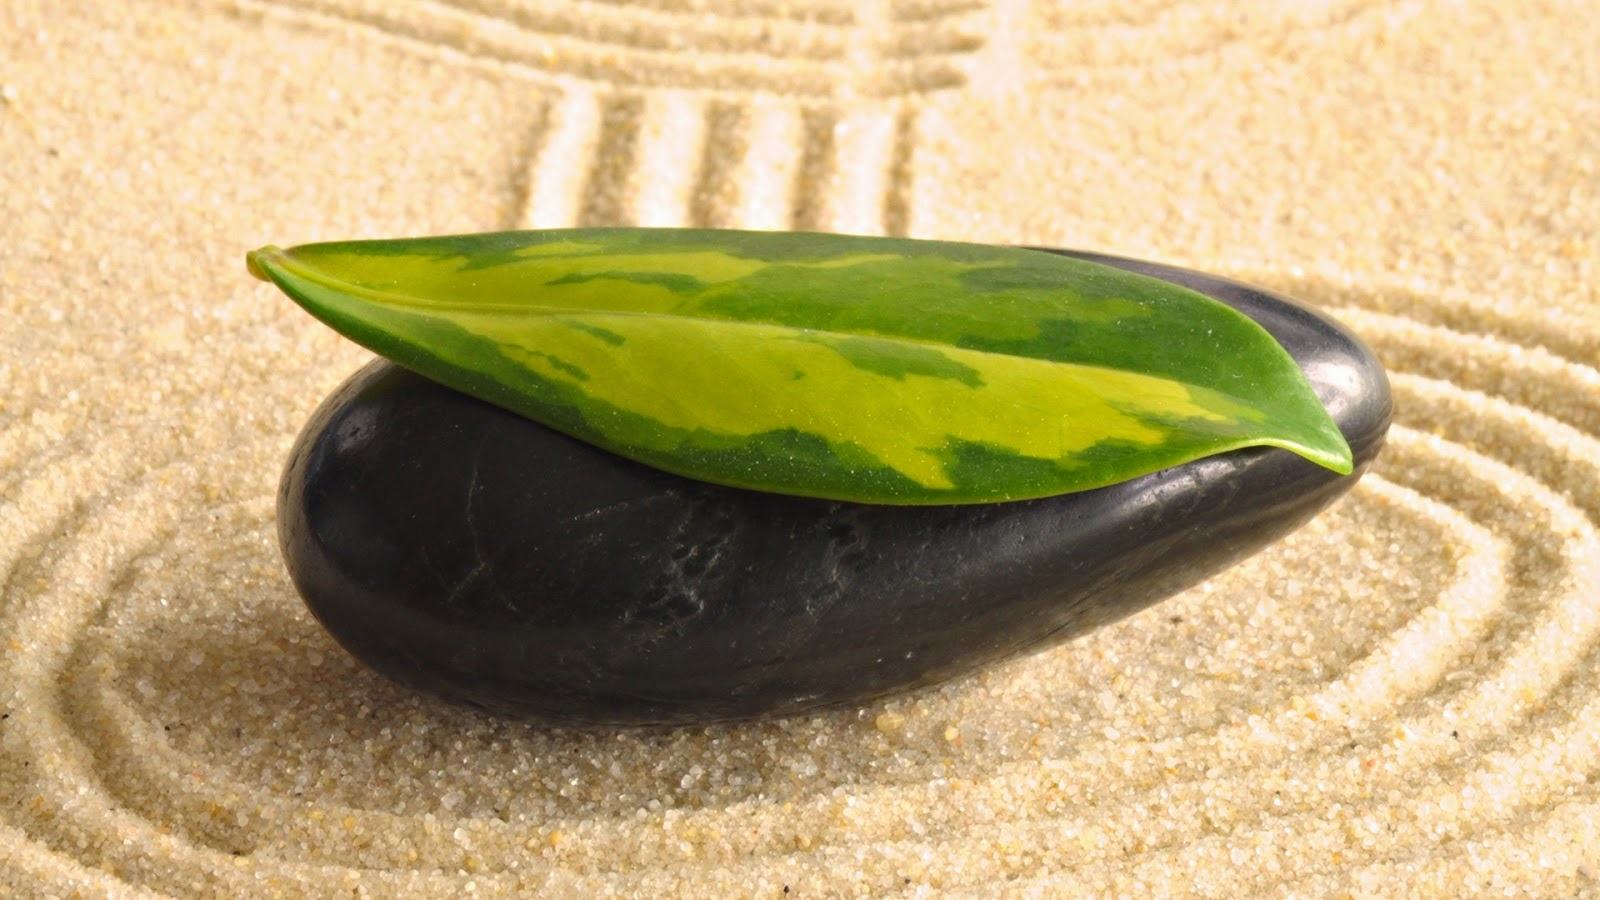 Green-leaf-on-Zen-black-pebble-stone-images-1920x1080-wallpap.jpg